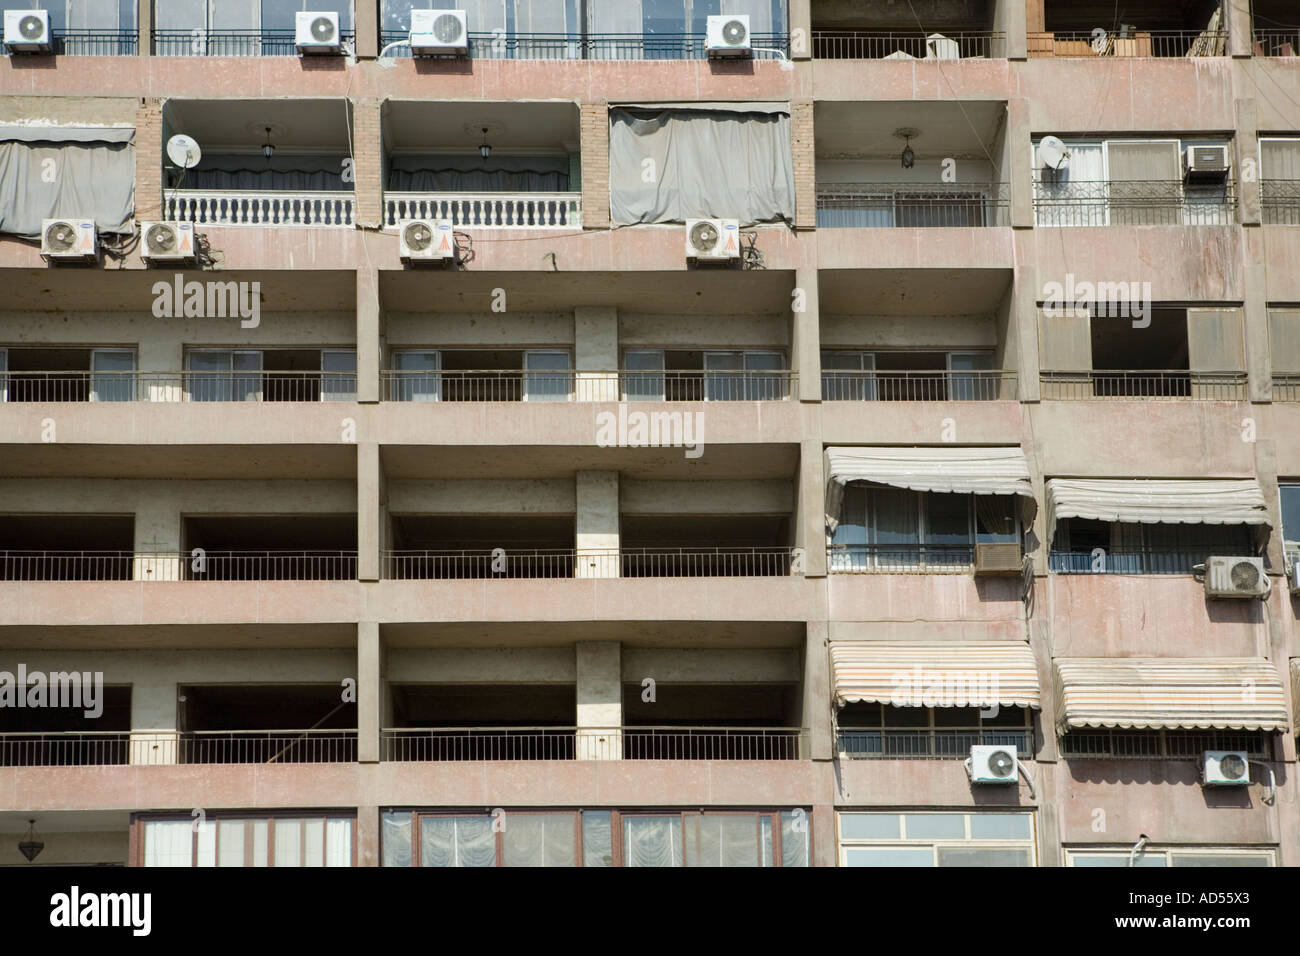 close up of apartment block balconies with washing and air